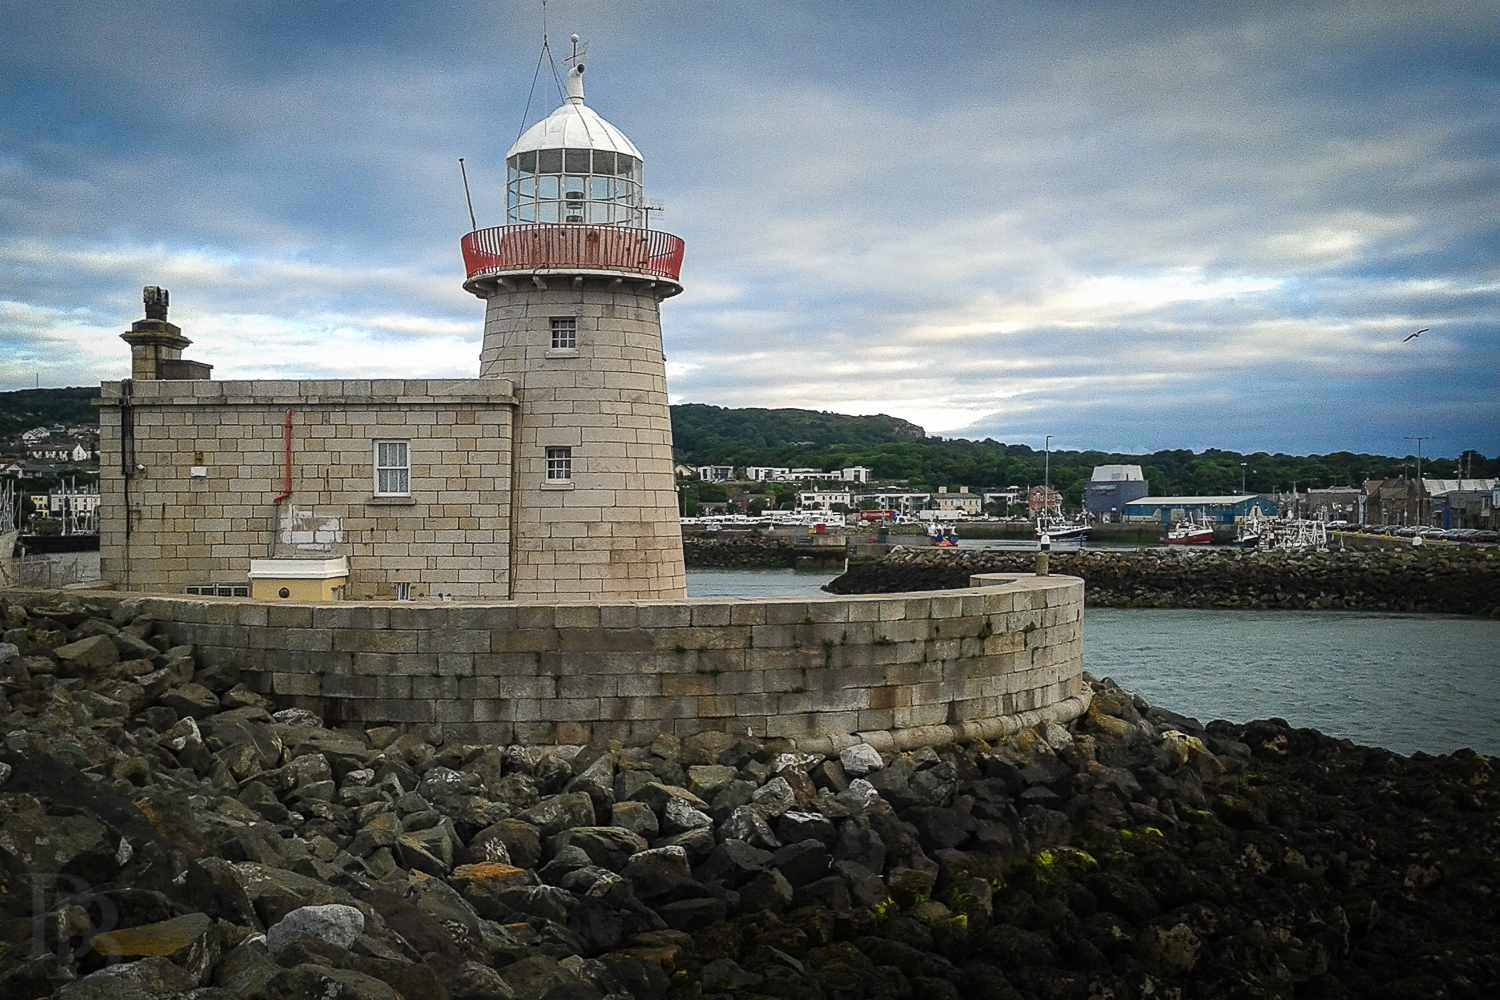 Howth Lighthouse - where Erskine Childers landed rebel arms